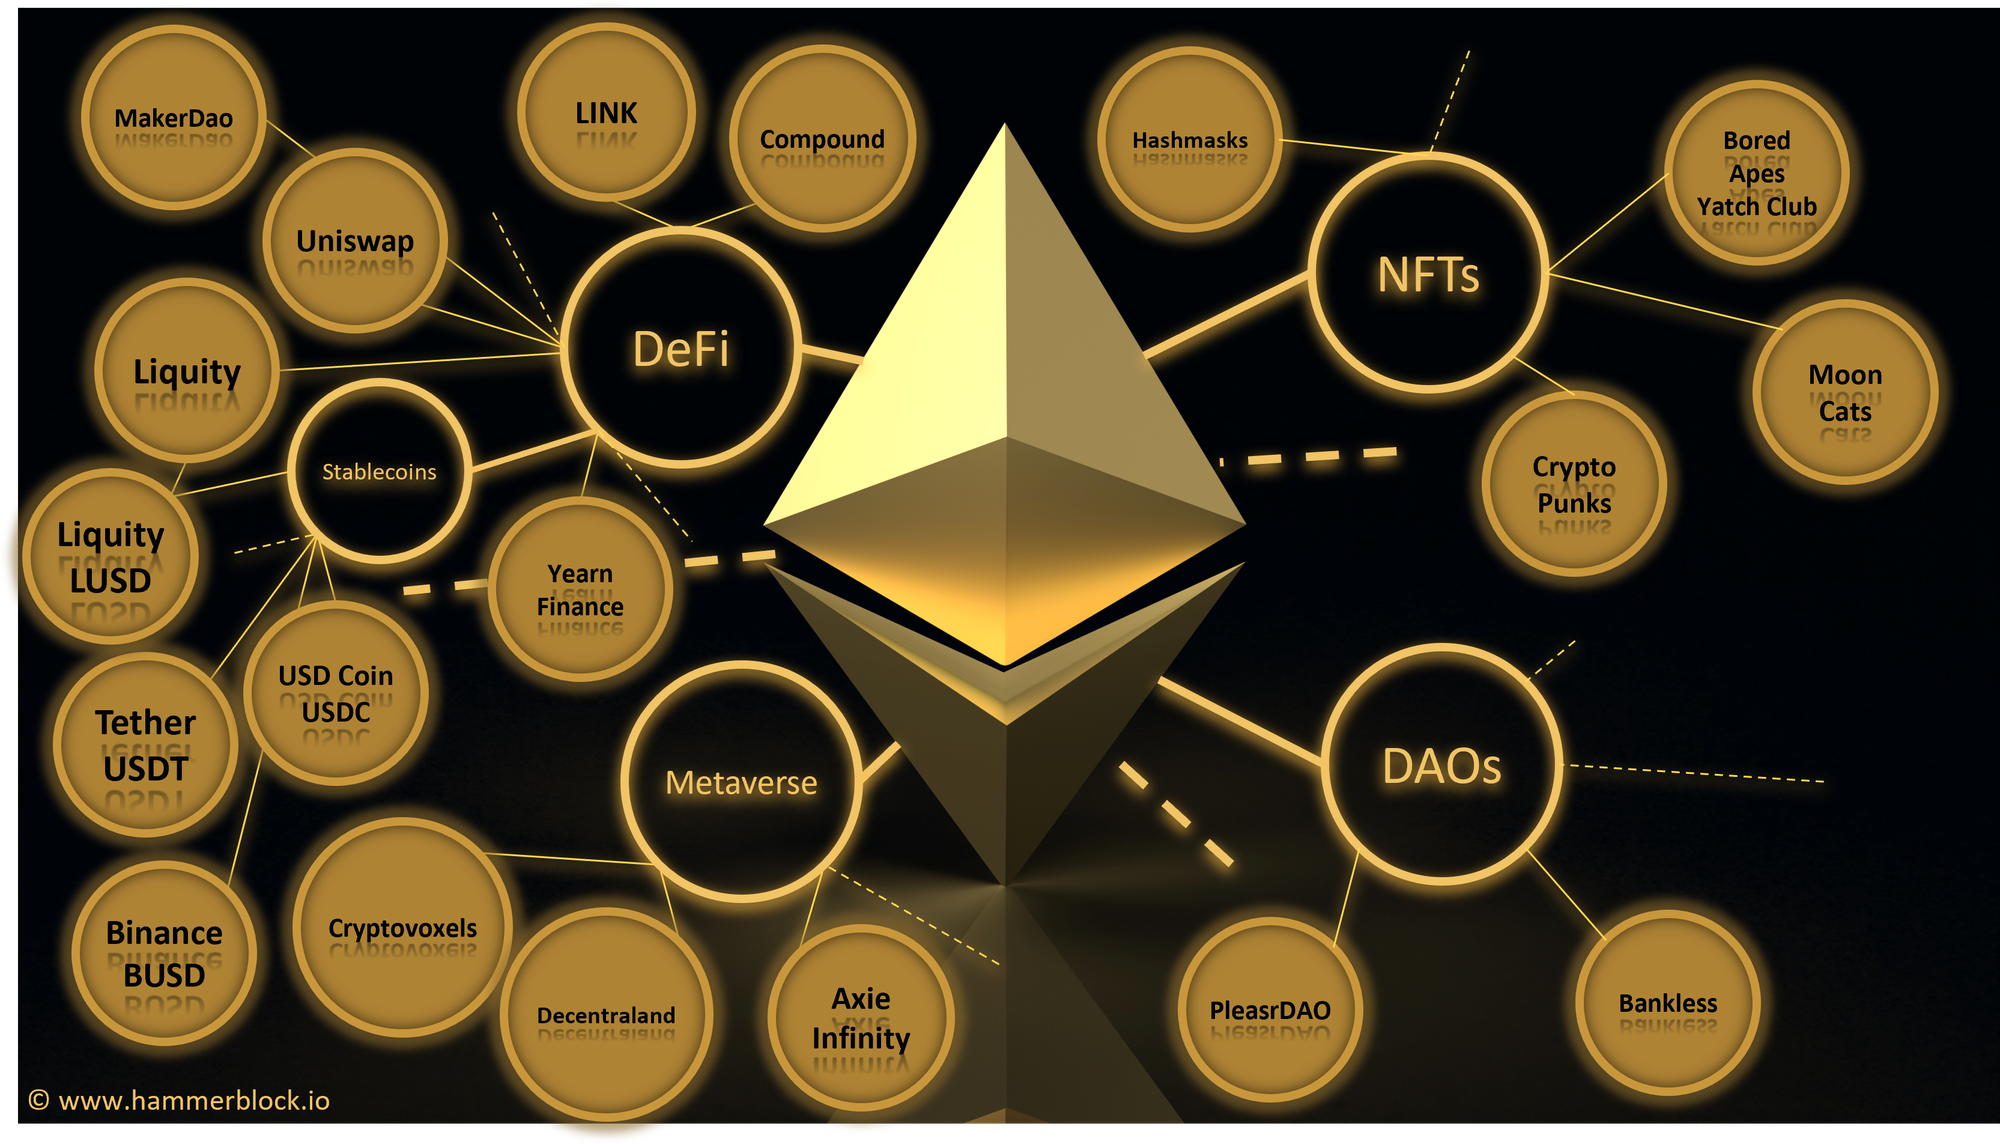 Ethereum & Co. as general-purpose blockchains are more than Bitcoin